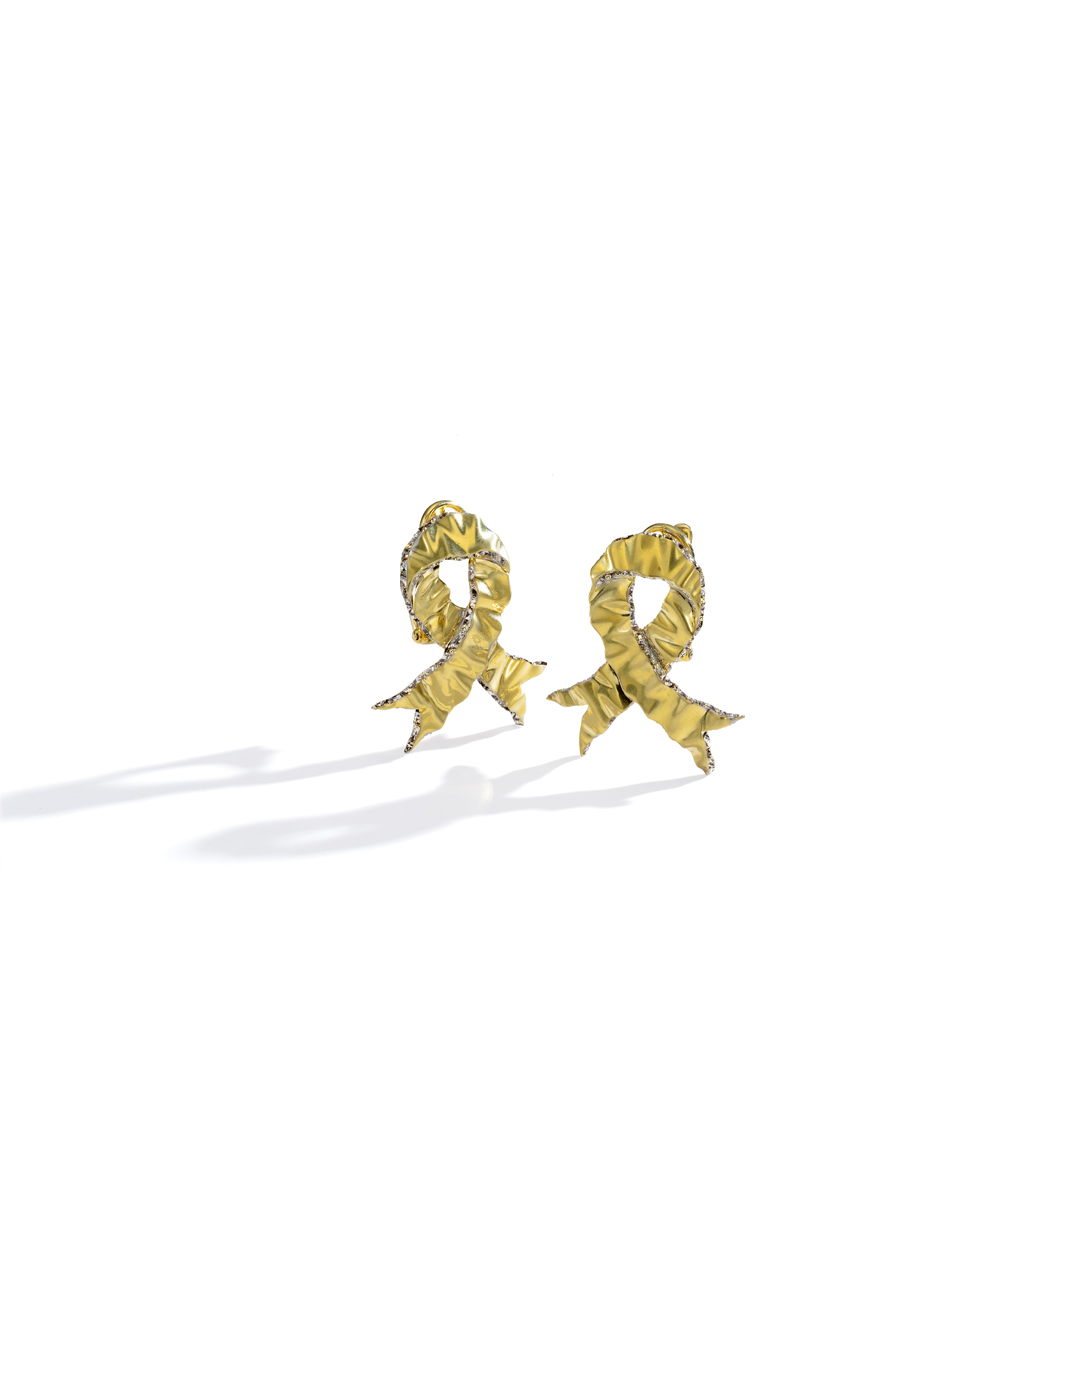 mish_products_earrings_Bond Bow-BRWNDIA-Earclip-1